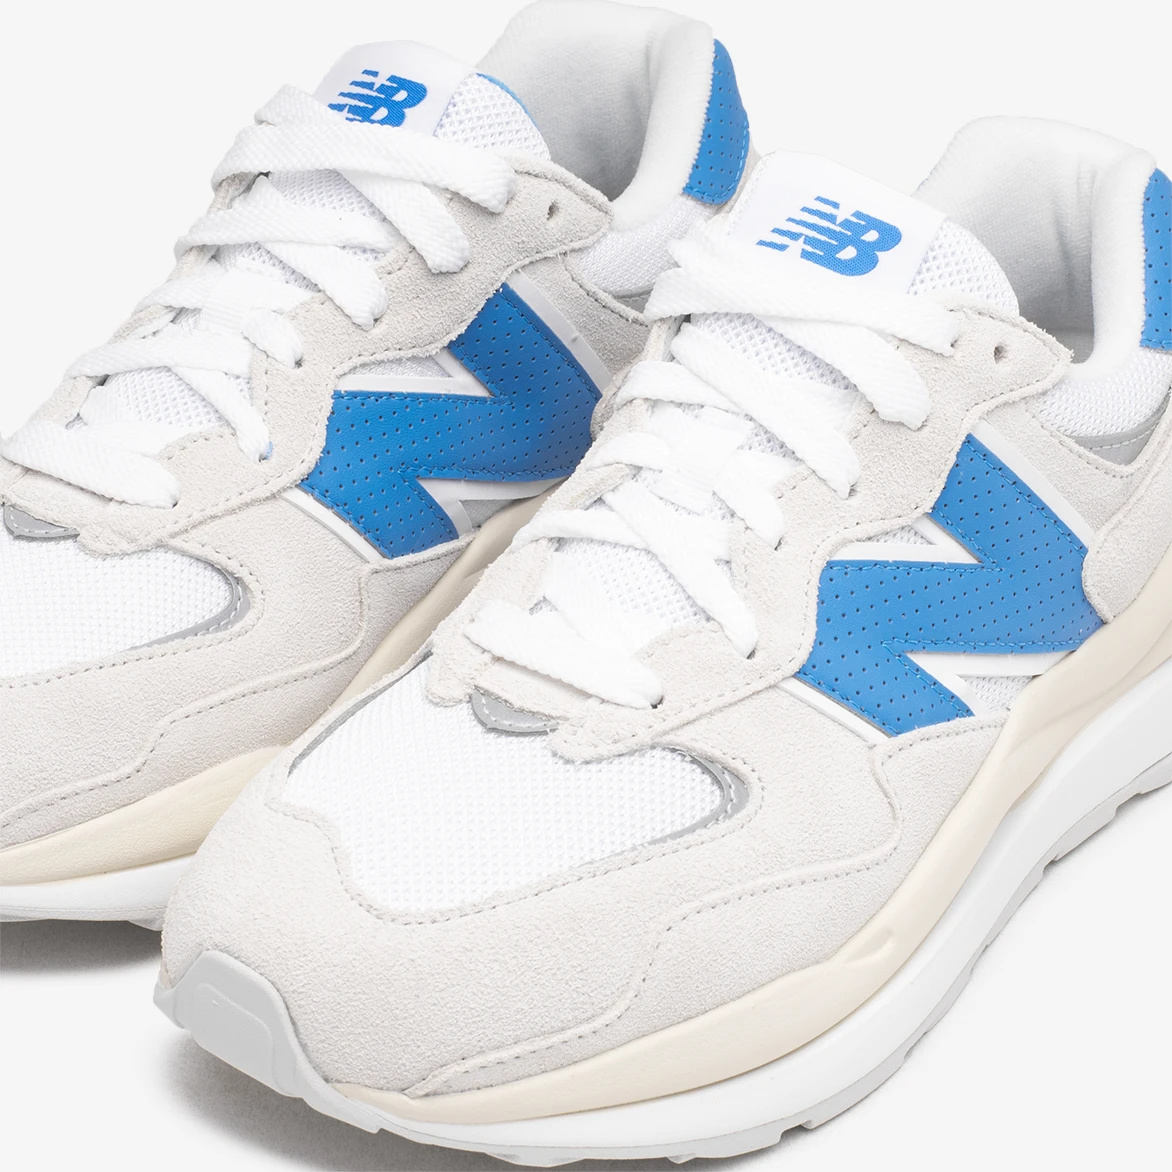 """New Balance 57/40 """"Helium Blue"""": Sale Price: $75 (Retail $100)  – FREE SHIPPING – use code:  – SHOUTS25 –  at checkout"""